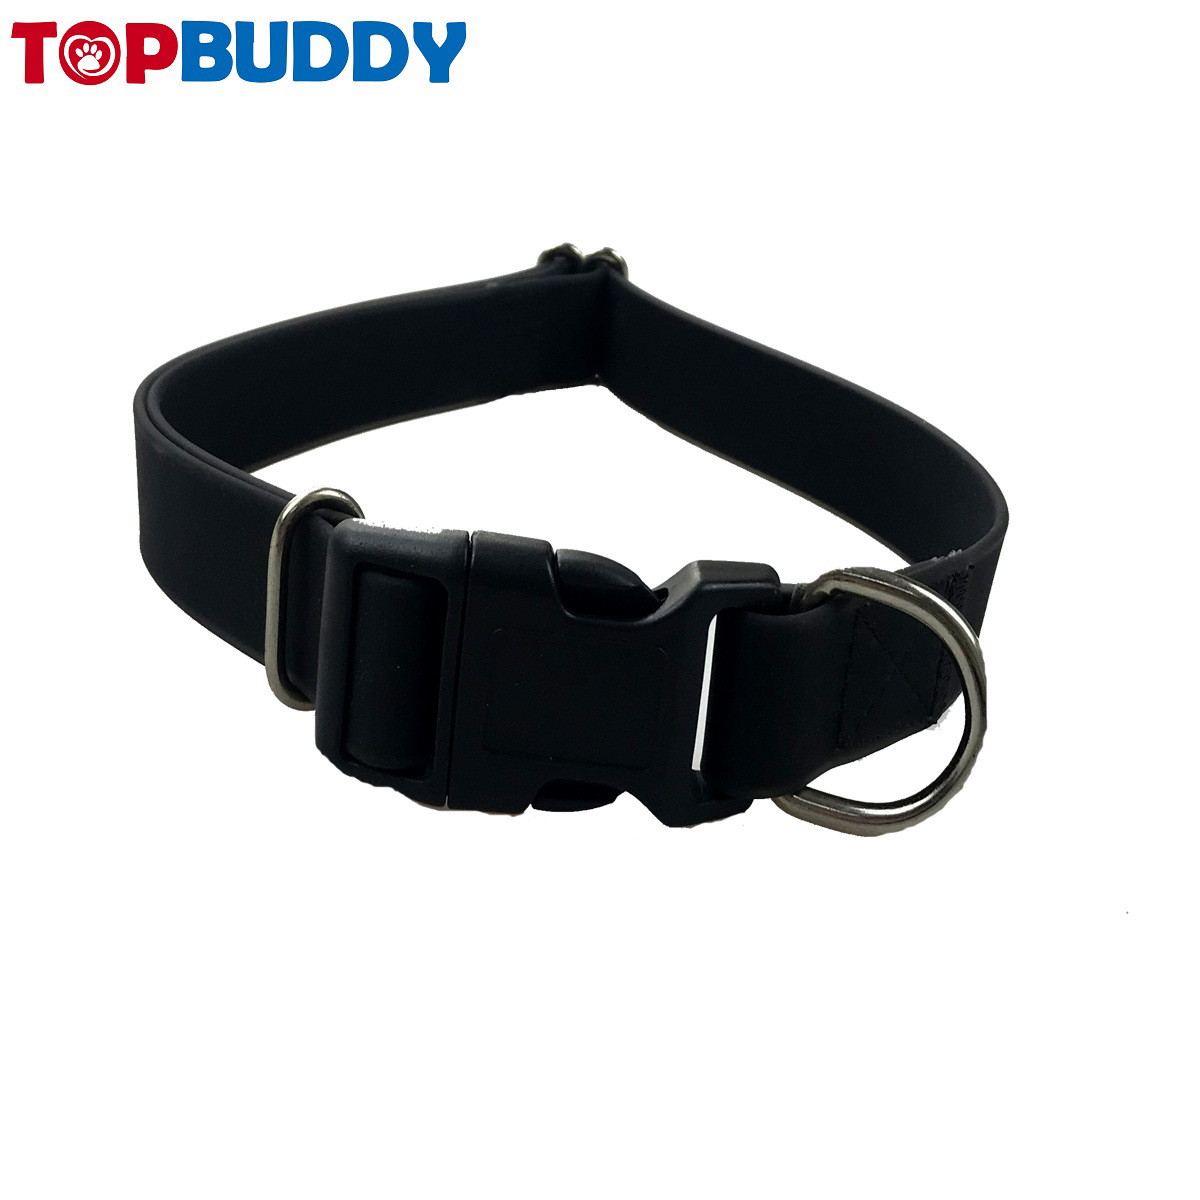 Pet Supplies Silica Gel Neck Ring Dog Neck Ring Fashion Dog Neck Ring Reflective Proof Punch Hand Holding Rope Customizable